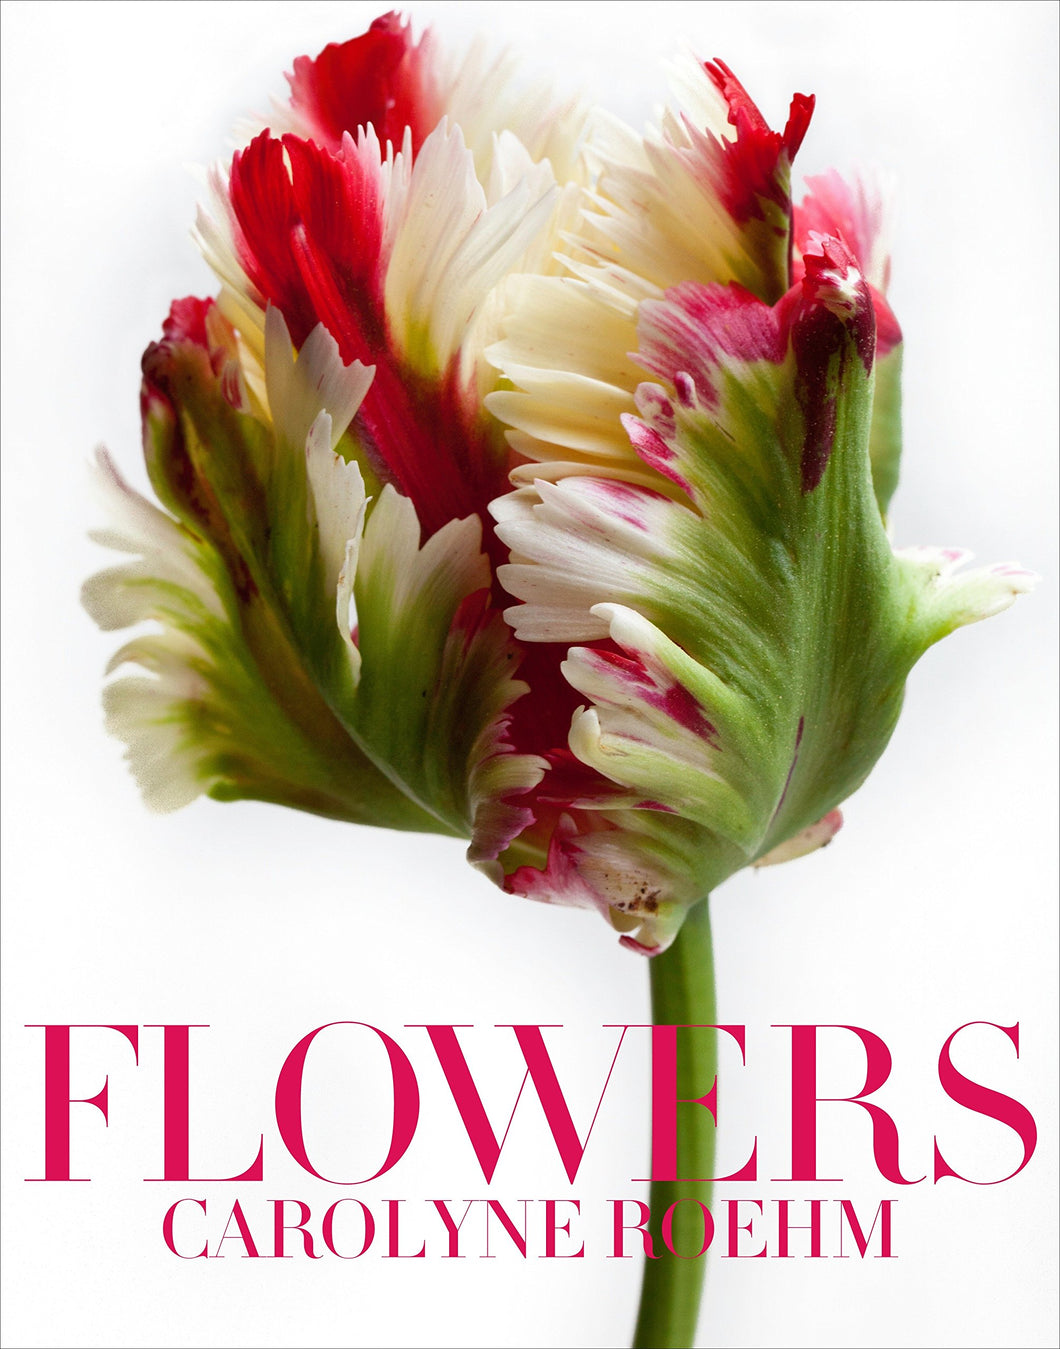 Flowers by Carolyn Roehm